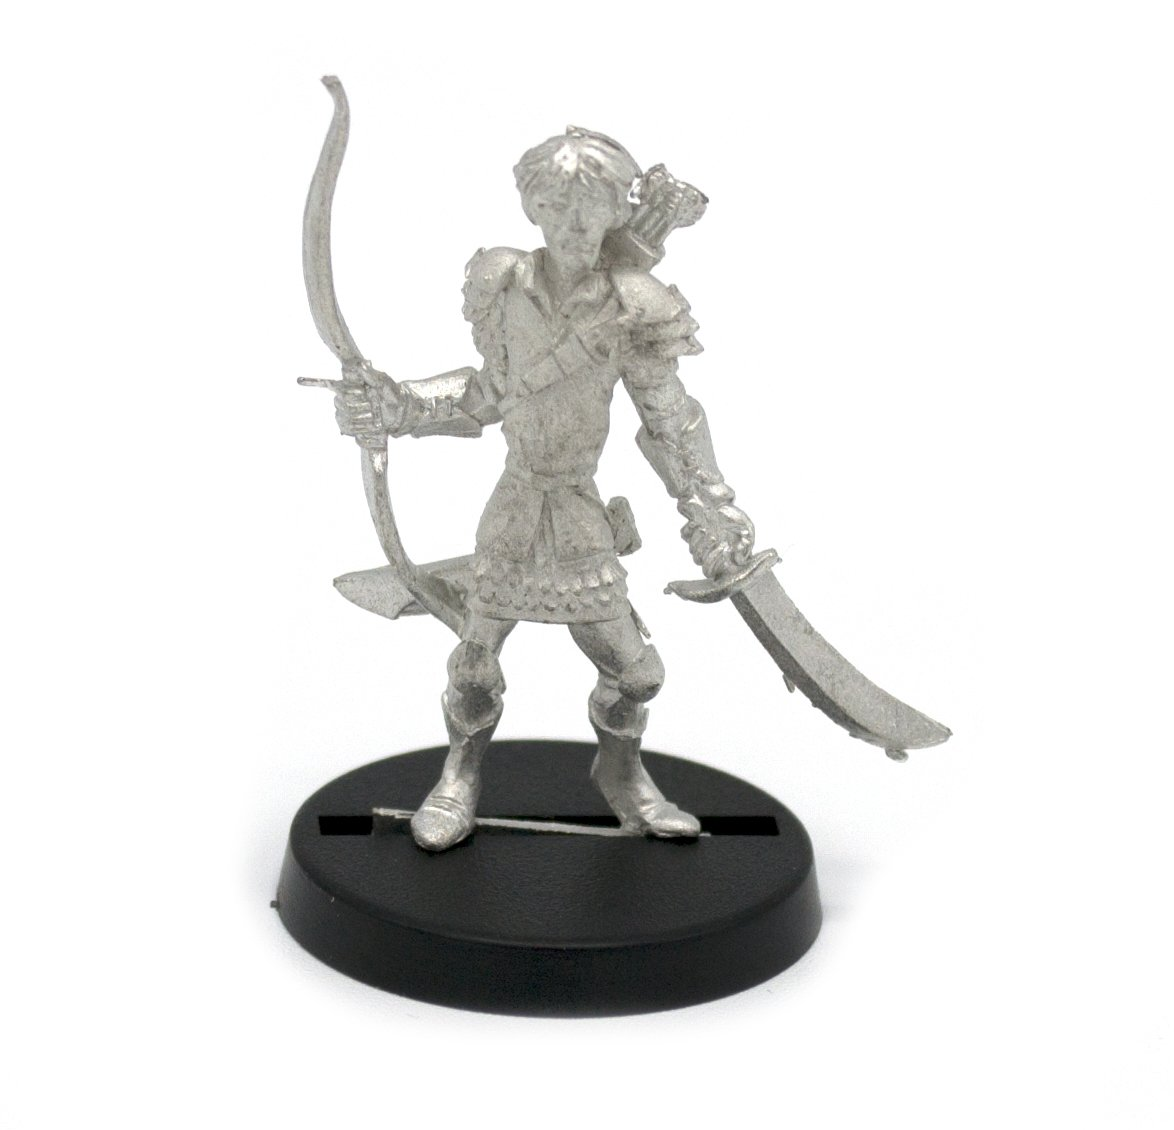 Stonehaven Elf Ranger Miniature Figure for 28mm Table top Wargames - Made in USA Stonehaven Miniatures